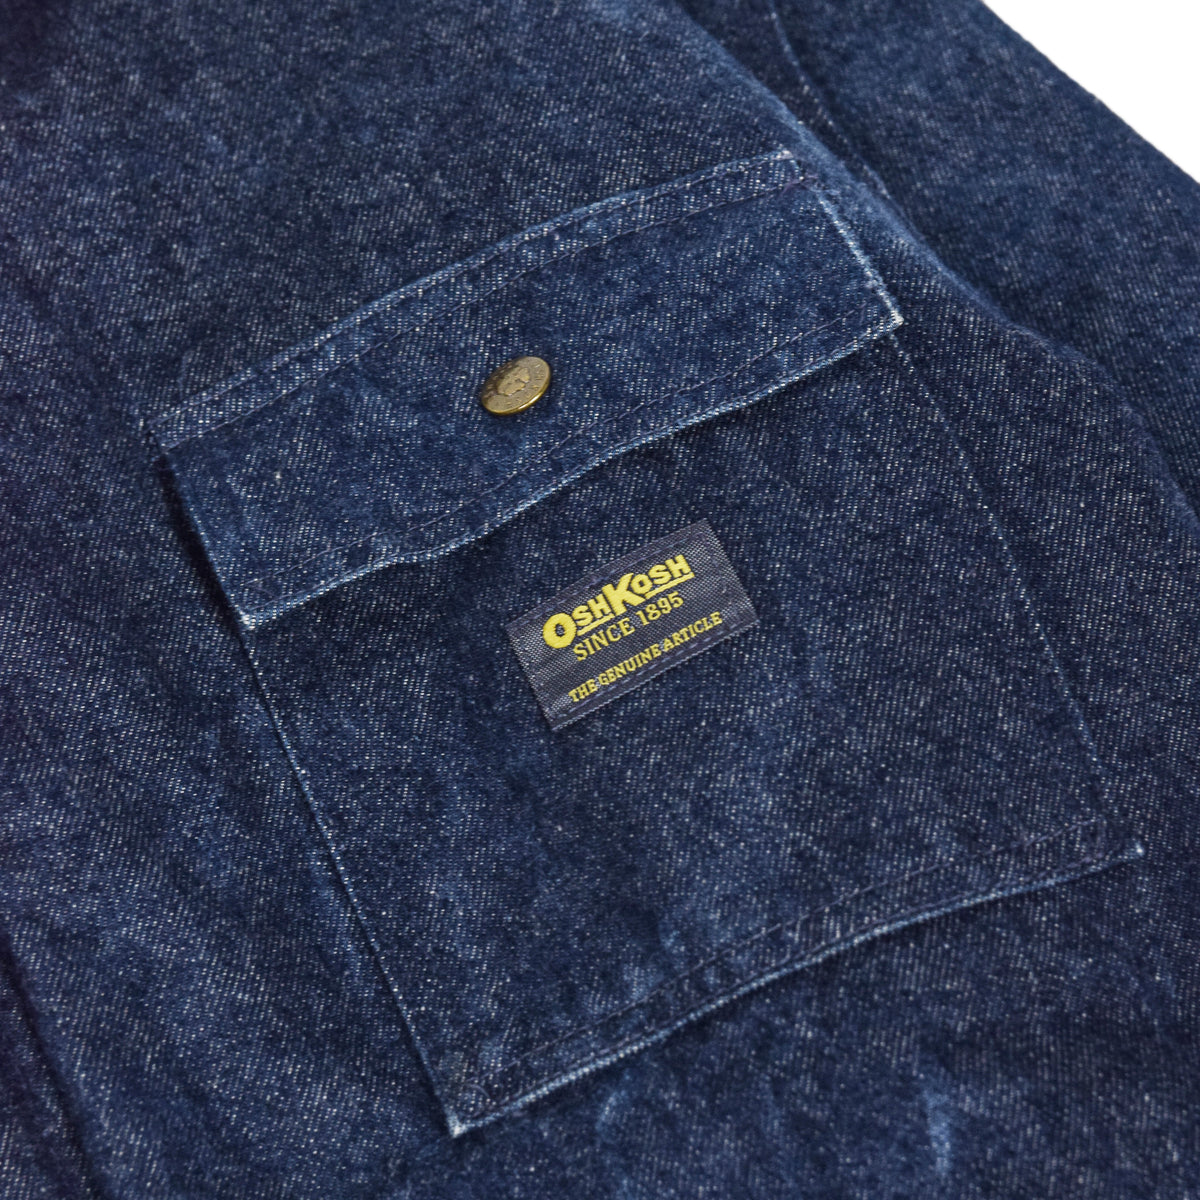 Vintage Osh Kosh USA Denim Quilt Lined Worker Chore Jacket L / XL Oversized POCKET